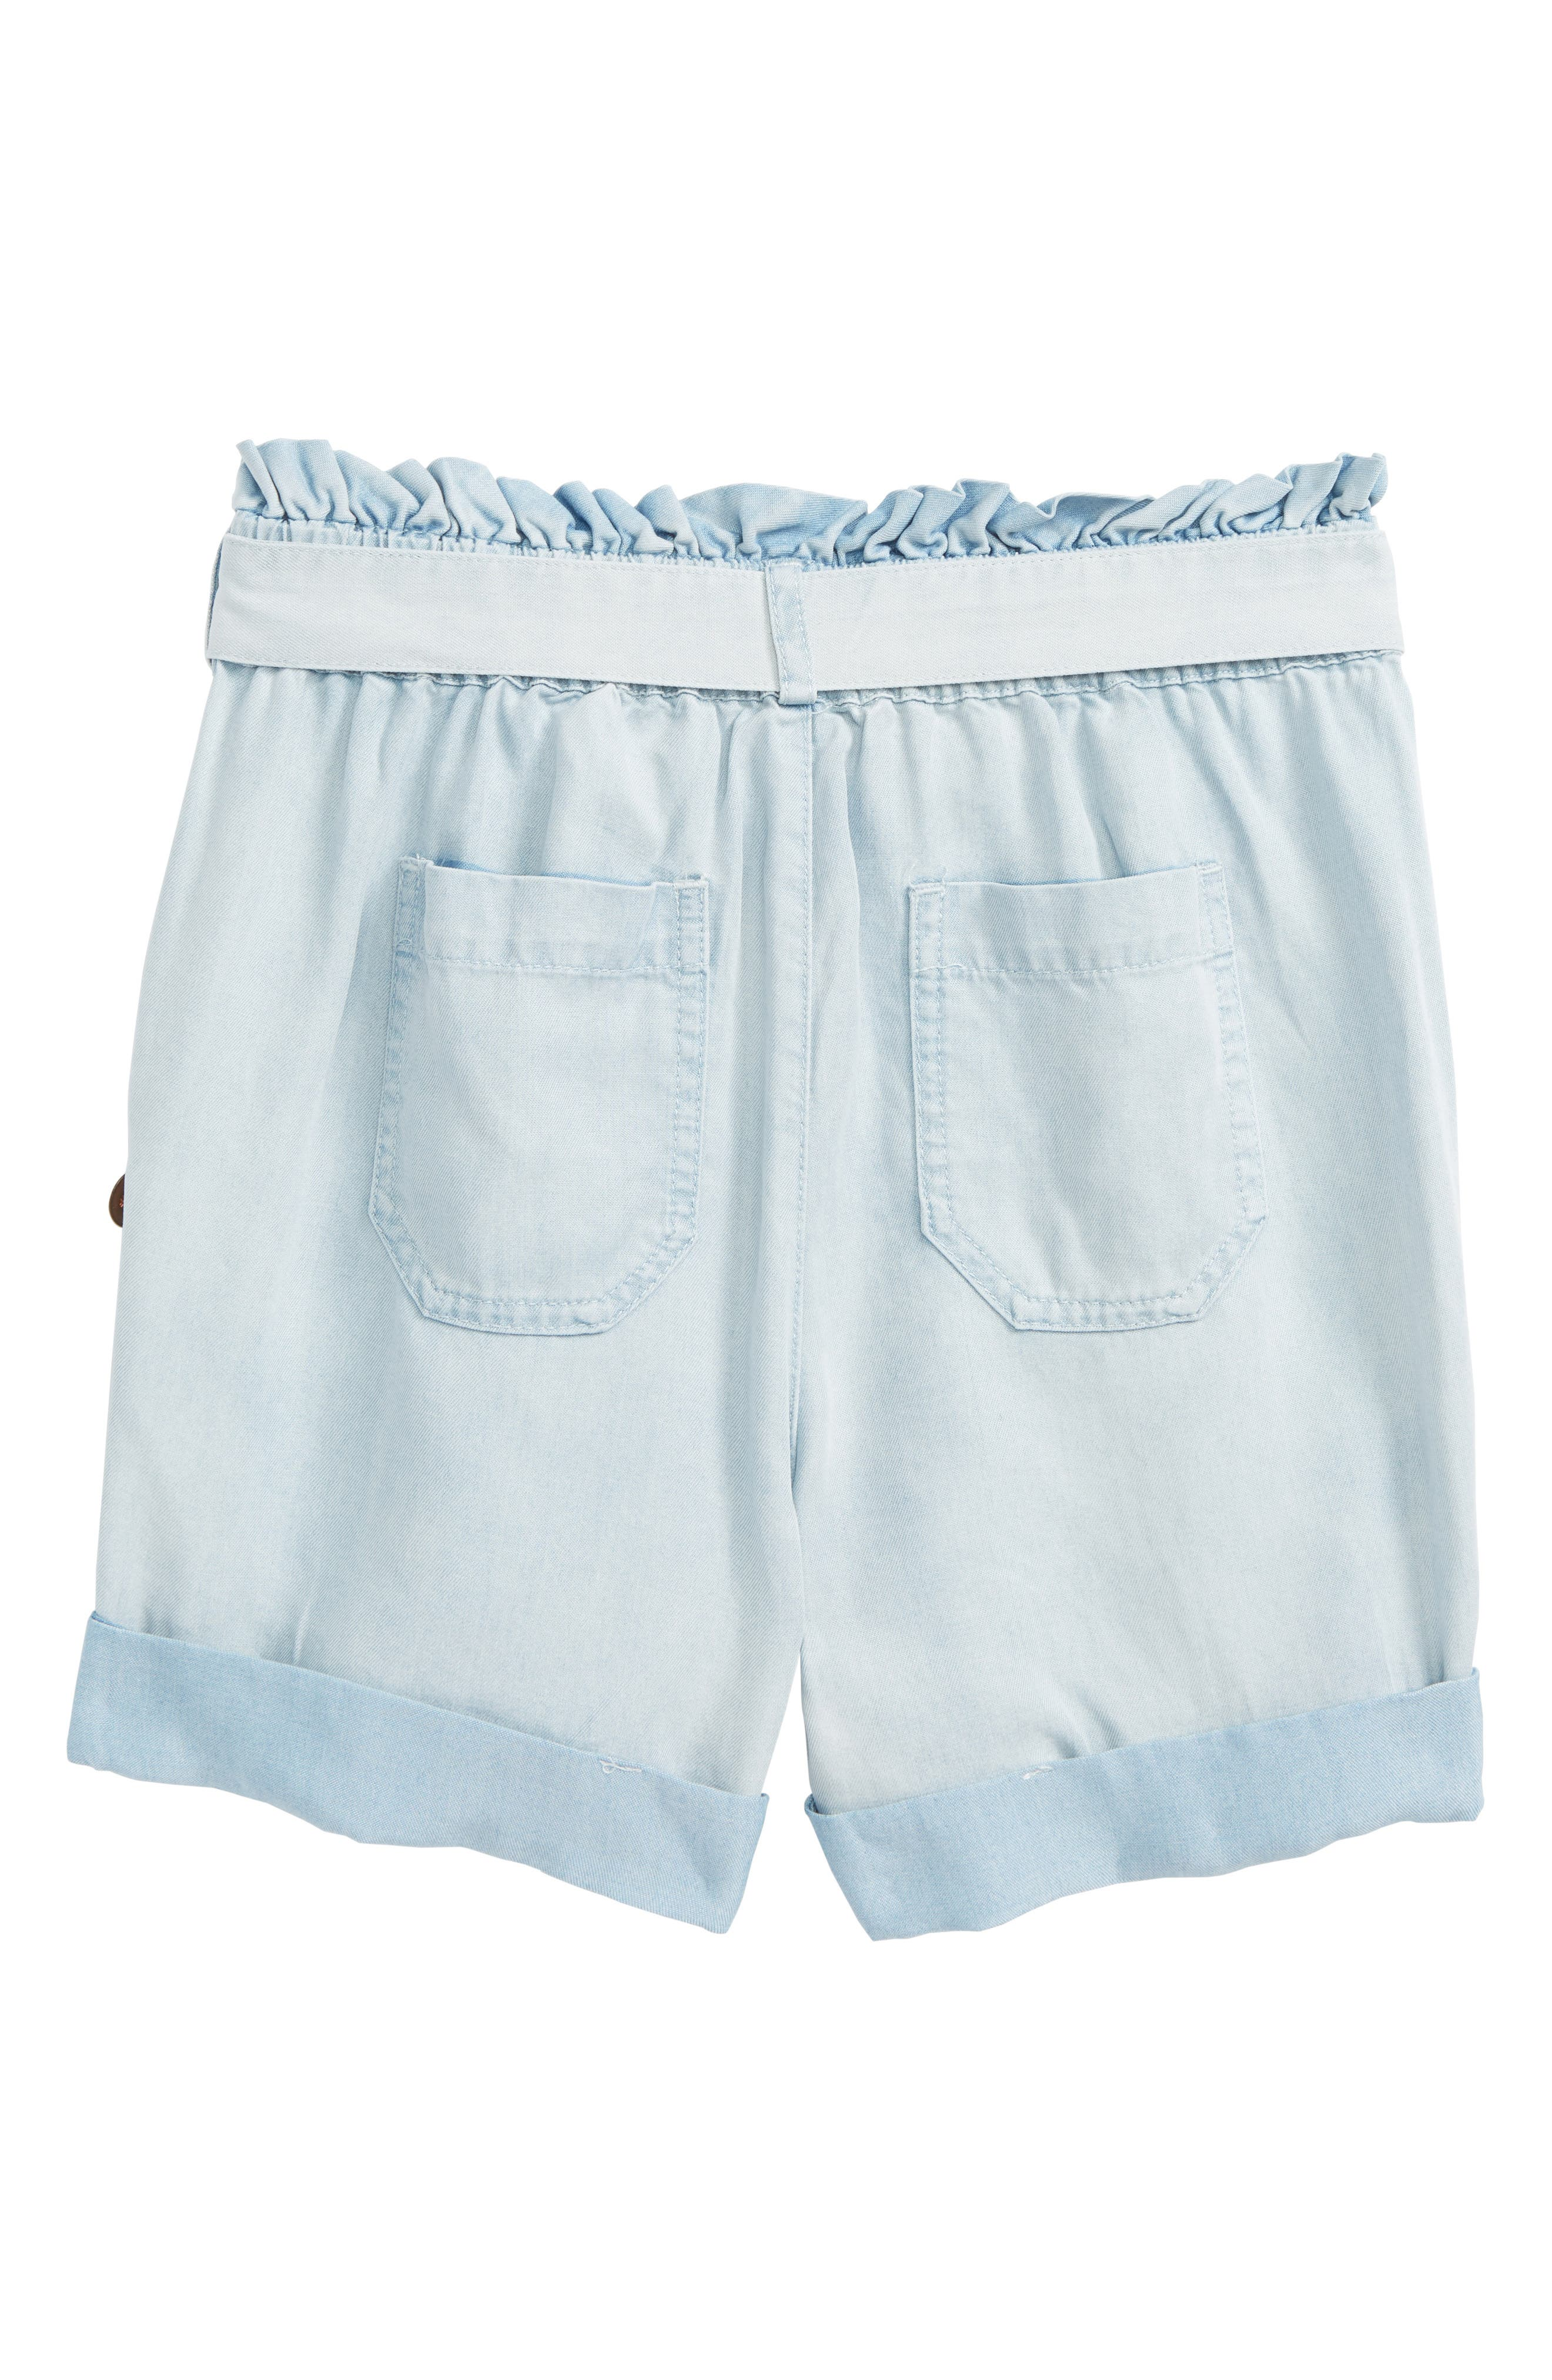 Scotch R'Belle Chambray Shorts,                             Alternate thumbnail 2, color,                             400